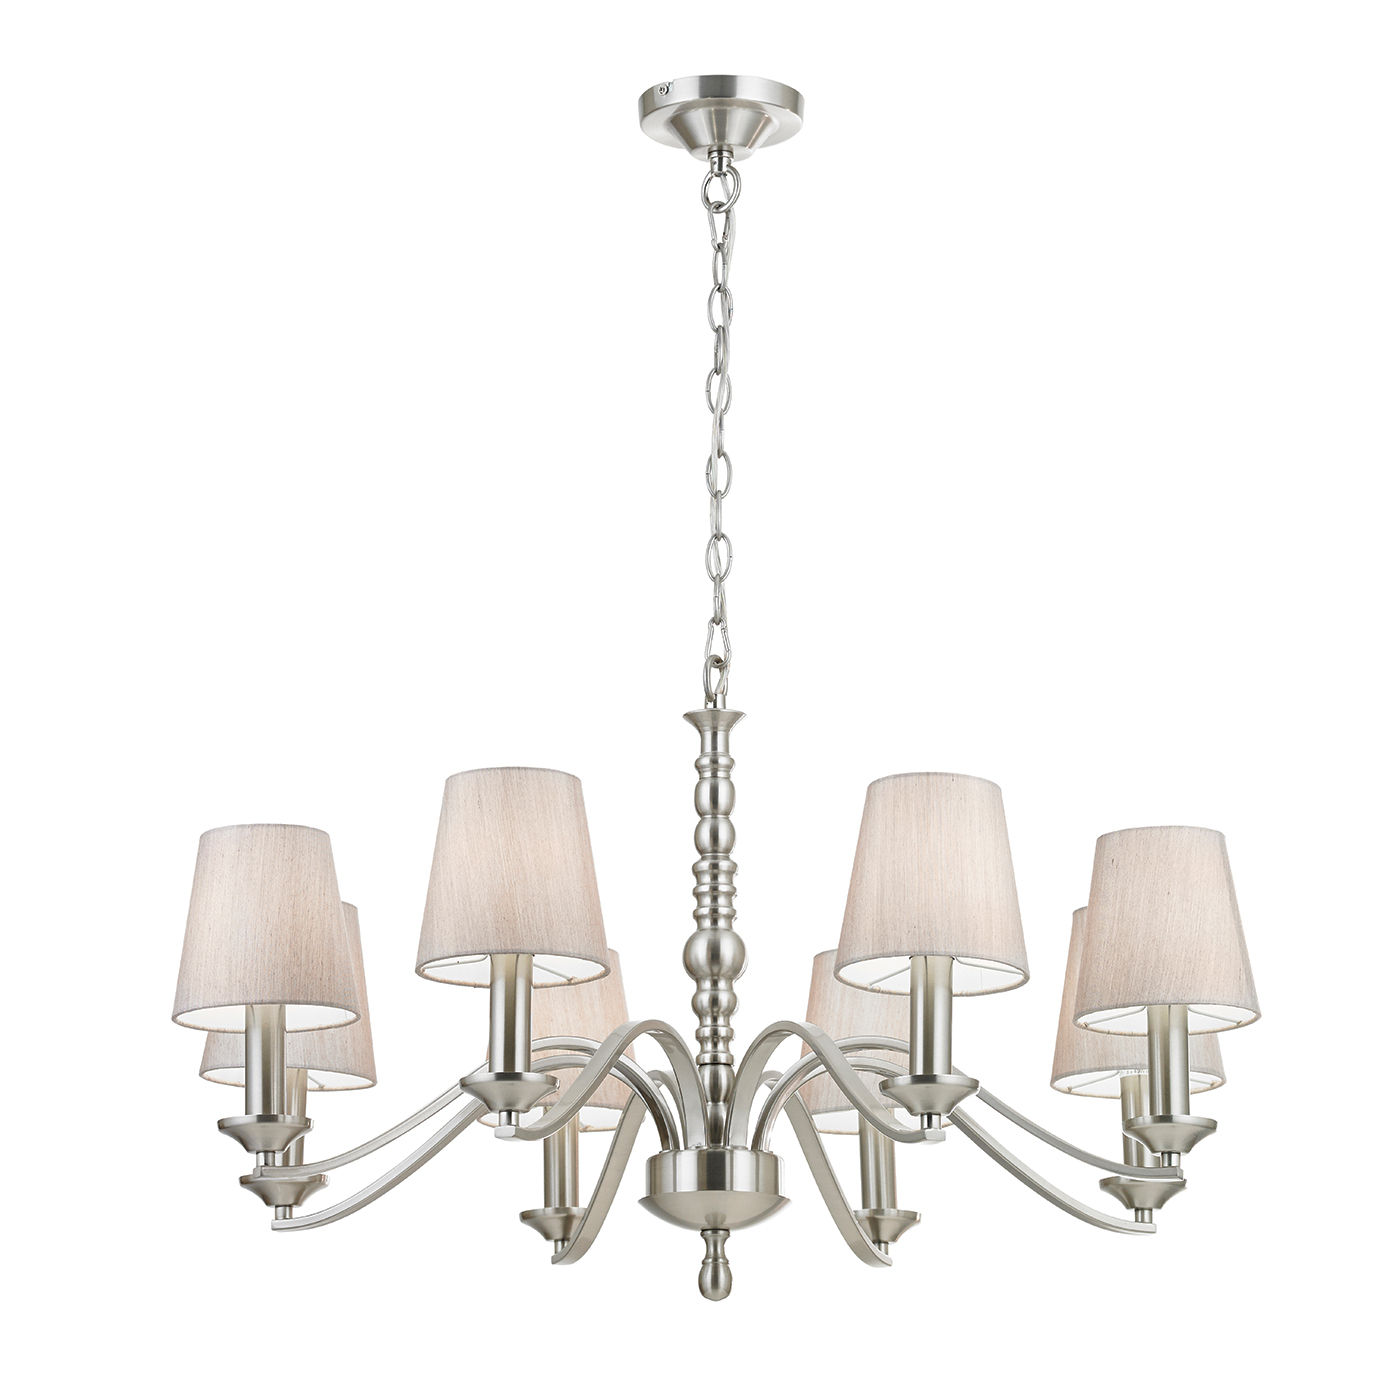 Endon Astaire chandelier 8x 40W Satin nickel effect plate & natural tc fabric Thumbnail 1